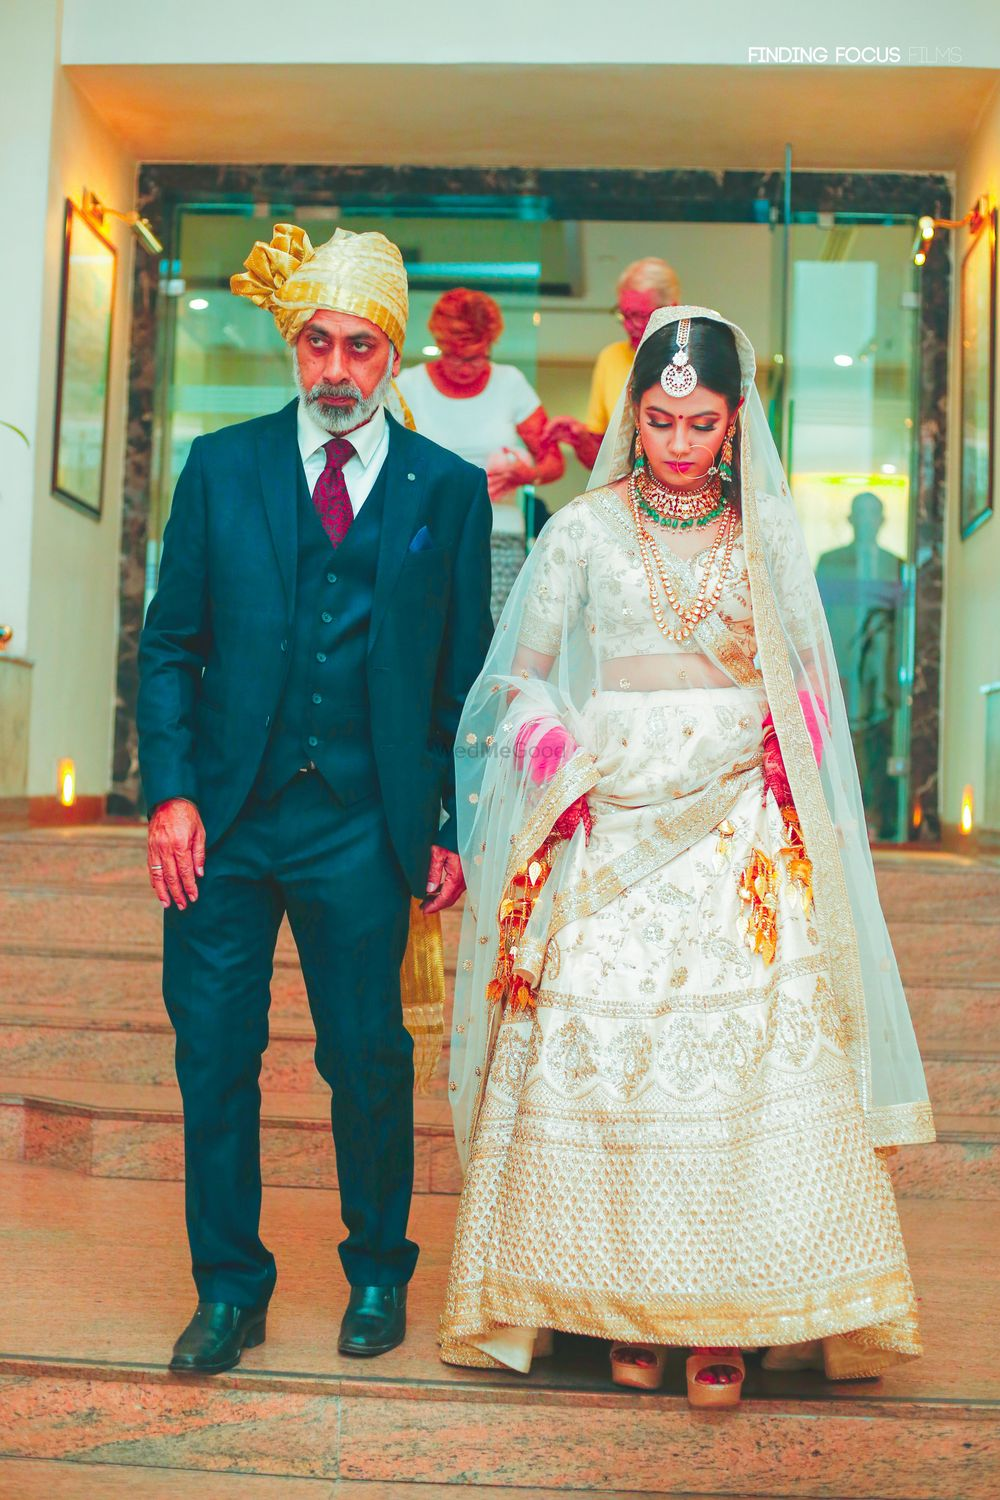 Photo From Aditya + Ashmita - By Finding Focus Films